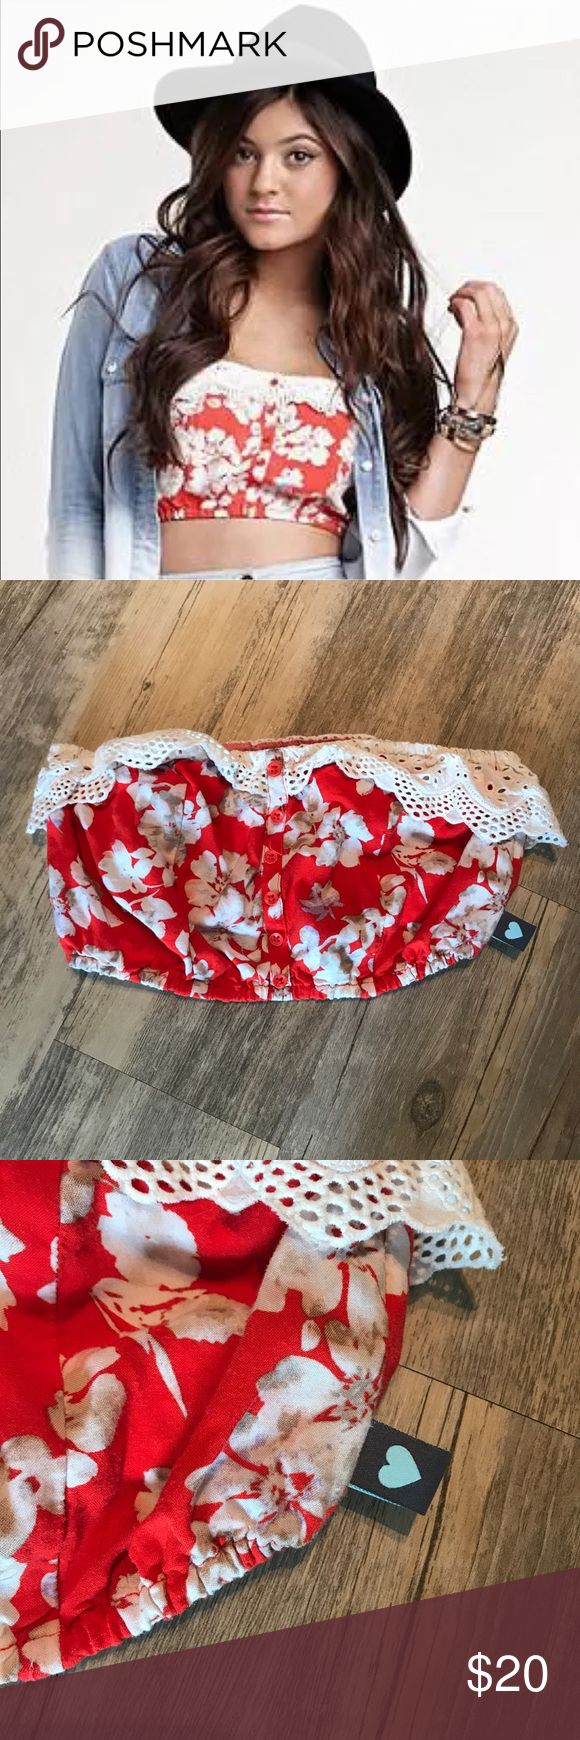 KENDALL & KYLIE sold out red floral Bandeau top Kendall & Kylie Collection Floral Eyelet Bandeau Red Crop Top Shirt SOLD OUT XS   Red with white floral pattern. Has eyelet trim on top and buttons running down the center. They are just decorative, the buttons do not actually open/close. Elastic on top and bottom.  Great condition.  Size XS Kendall & Kylie Tops Crop Tops